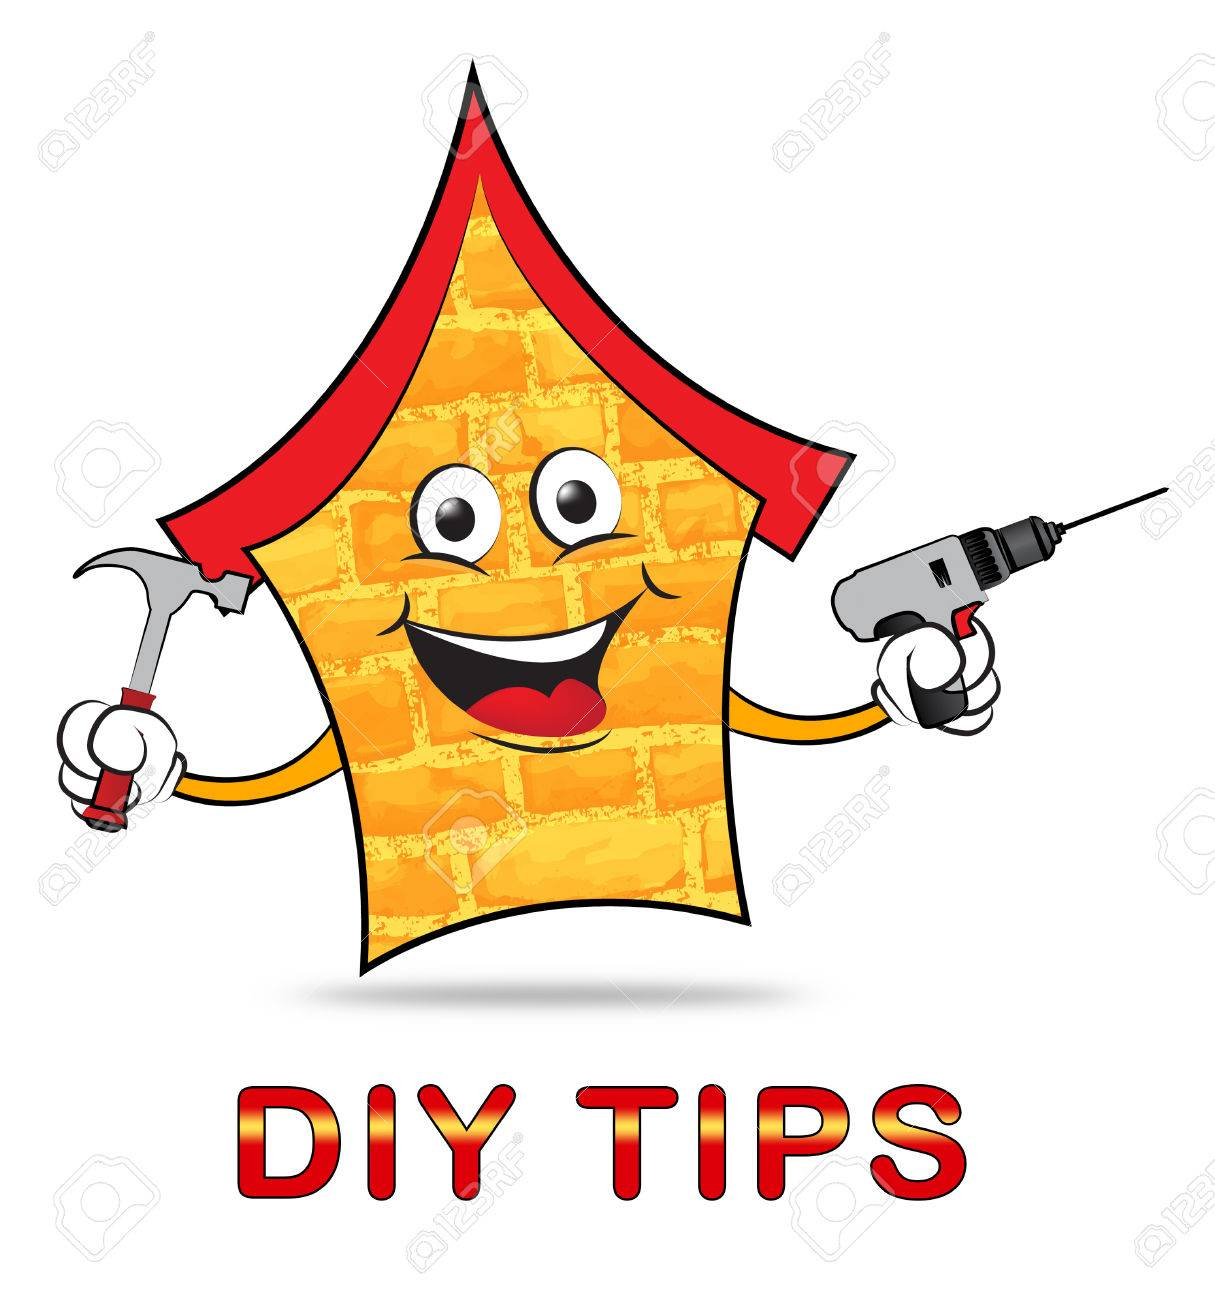 Diy tips meaning do it yourself tricks stock photo picture and diy tips meaning do it yourself tricks stock photo 61996293 solutioingenieria Gallery